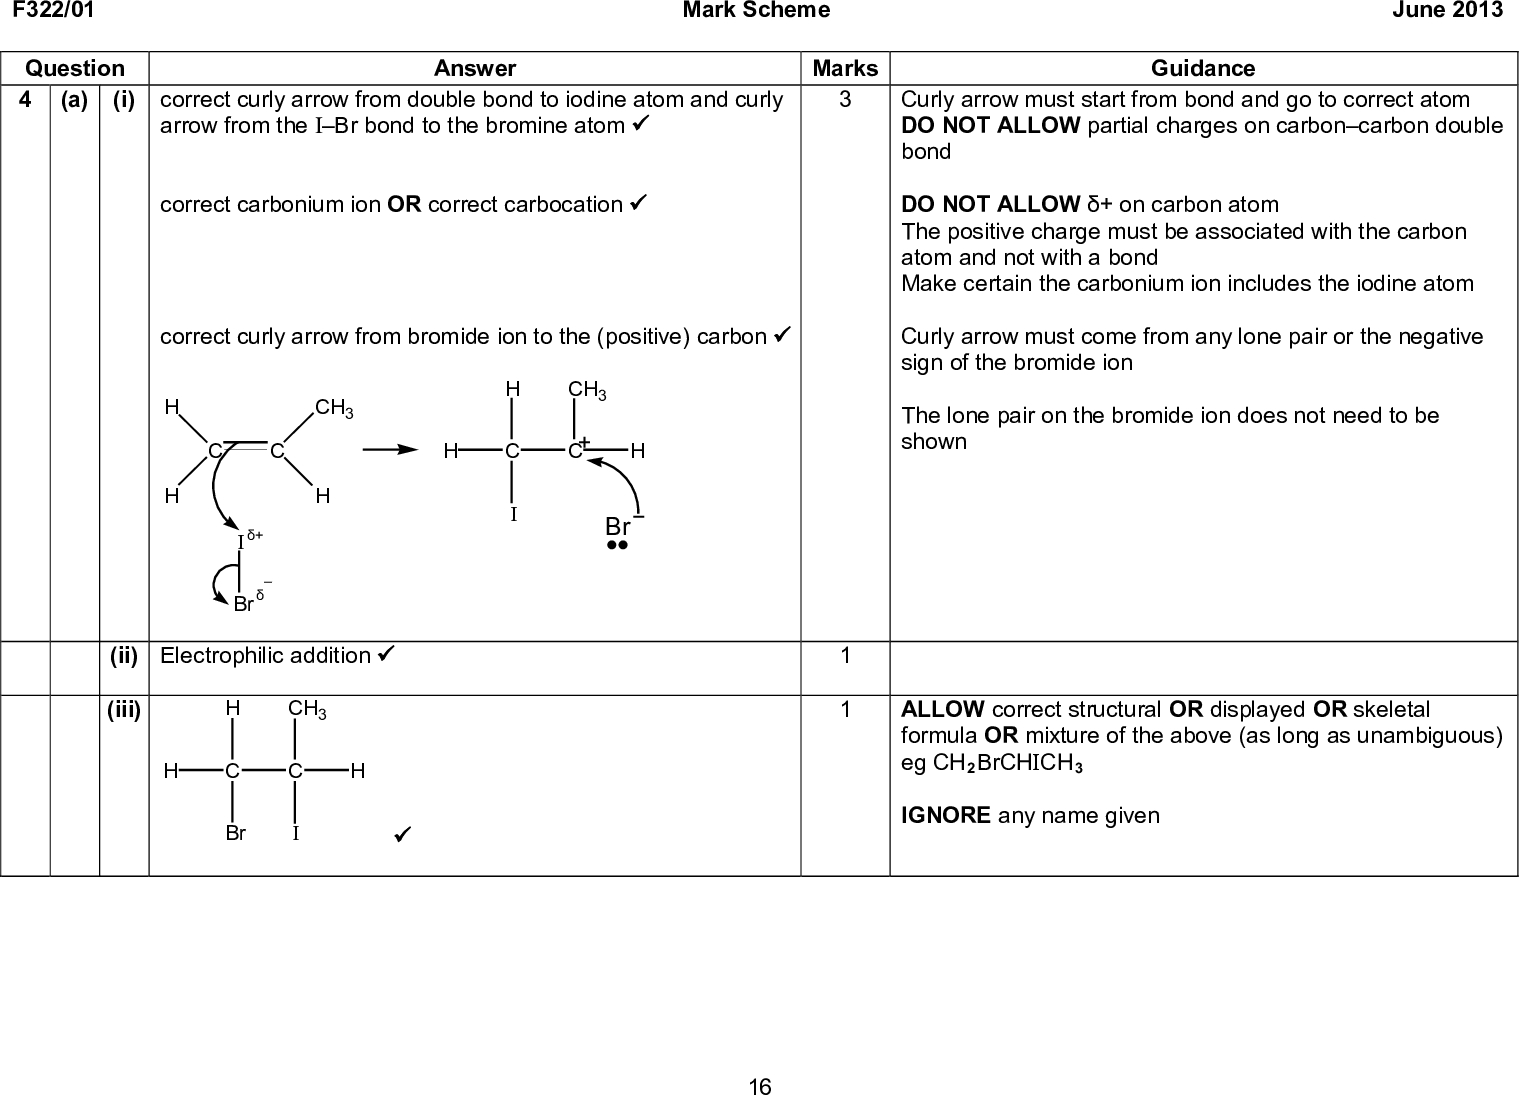 F322/01 Mark Scheme June 2013 Marks Guidance Curly arrow must start from bond and go to correct atom DO NOT ALLOW partial charges on carboncarbon double bond DO NOT ALLOW + on carbon atom The positive charge must be associated with the carbon atom and not with a bond Make certain the carbonium ion includes the iodine atom Curly arrow must come from any lone pair or the negative sign of the bromide ion The lone pair on the bromide ion does not need to be shown ALLOW correct structural OR displayed OR skeletal formula OR mixture of the above (as long as unambiguous) eg CH2BrCHICH3 IGNORE any name given Question 4 (a) Answer (i) correct curly arrow from double bond to iodine atom and curly arrow from the IBr bond to the bromine atom (cid:57) correct carbonium ion OR correct carbocation (cid:57) correct curly arrow from bromide ion to the (positive) carbon (cid:57) H CH3 CH3 +Br (ii) Electrophilic addition (cid:57) (iii) Br CH3 (cid:57) Br 16<br />  F322/01 Mark Scheme June 2013 Question (b) (i) Ultraviolet OR UV (cid:57) Answer (ii) (free) radical substitution (cid:57) (Initiation step) IBr (cid:198) Br + I (cid:57) homolytic fission (cid:57) (Propagation steps) Br + CH4 (cid:198) HBr + CH3 (cid:57) CH3 + IBr (cid:198) CH3I + Br (cid:57) (Termination steps) I + CH3 (cid:198) CH3I OR Br + Br (cid:198) Br2 OR I + I (cid:198) I2 OR Br + CH3 (cid:198) CH3Br OR CH3 + CH3 (cid:198) C2H6 OR I + Br (cid:198) IBr (cid:57) QWC propagation linked to correct equations Br + CH4 (cid:198) HBr + CH3 CH3 + IBr (cid:198) CH3I + Br AND initiation linked to correct equation IBr (cid:198) Br + I (cid:57) Guidance ALLOW high temperature OR 300 oC IGNORE light/radiation DO NOT ALLOW any catalyst Use the SEEN annotation on page 11 if blank or no credit can be given IGNORE any state symbols in equations Radicals do NOT need a single dot IGNORE dots DO NOT ALLOW homolytical fission Heterolytic anywhere in the answer contradicts this mark IGNORE I + CH4 (cid:198) HI + CH3 IGNORE CH3 + IBr (cid: